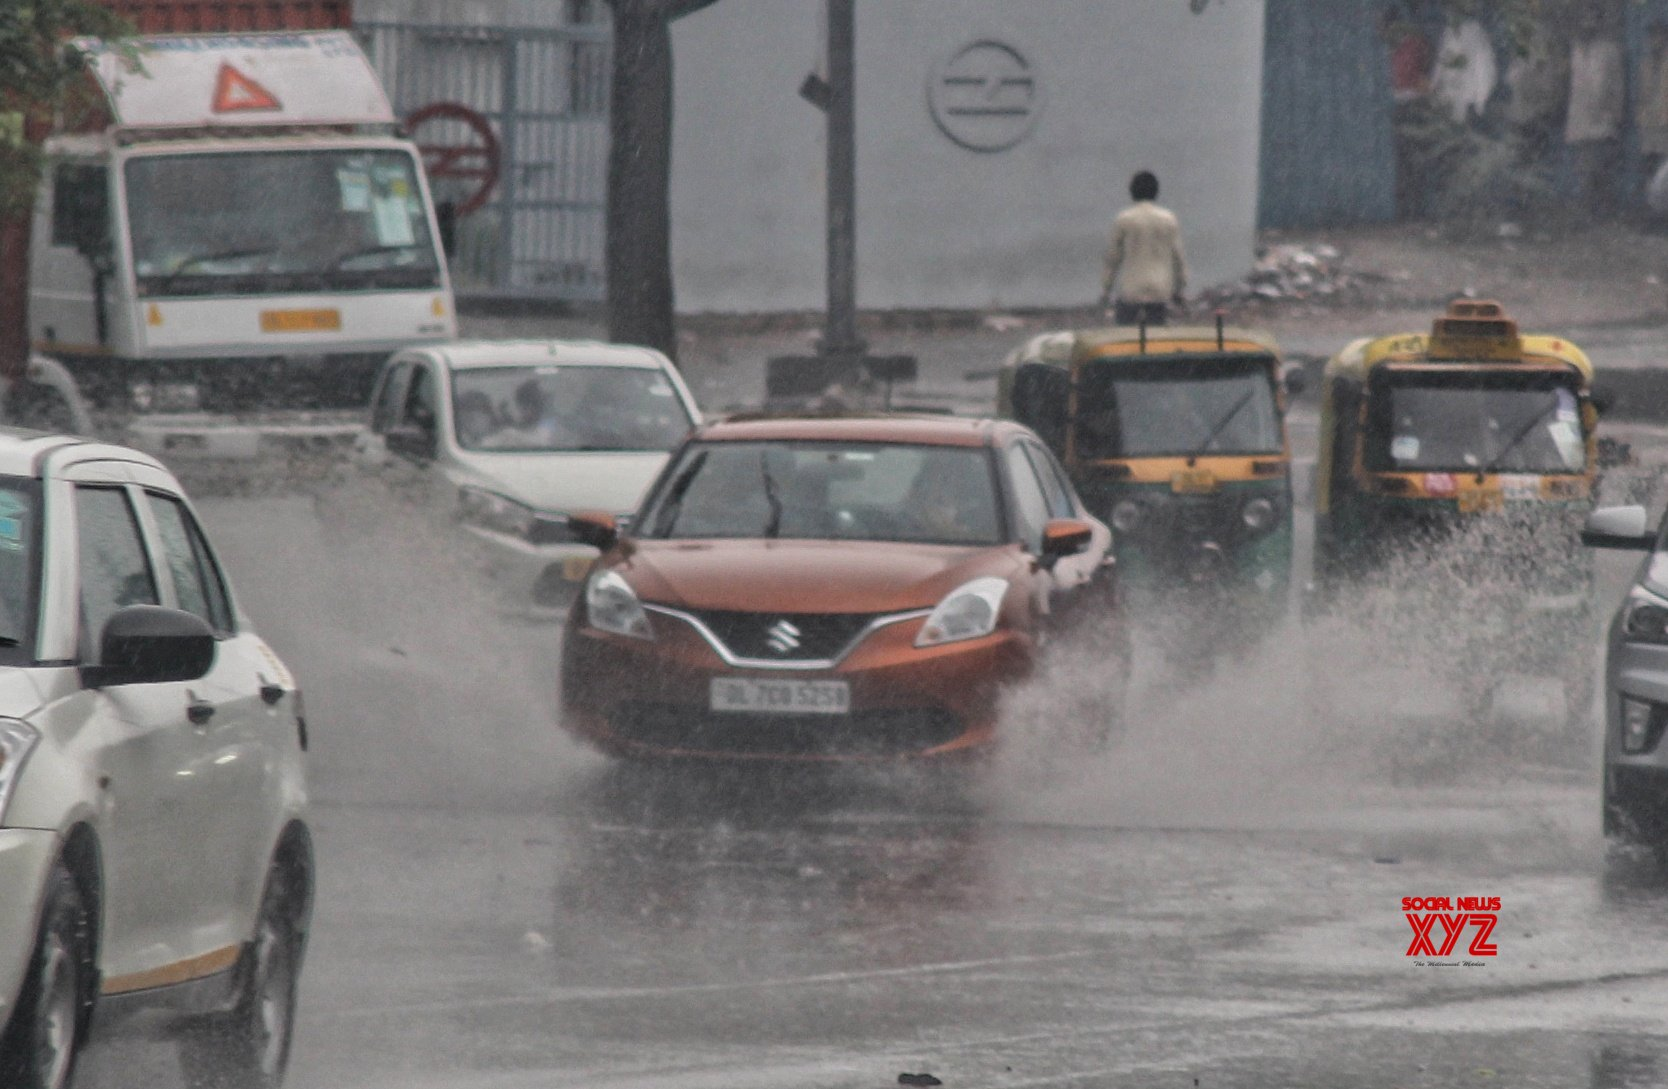 'Govt should focus on converting 30 cr on-road vehicles to clean fuels'